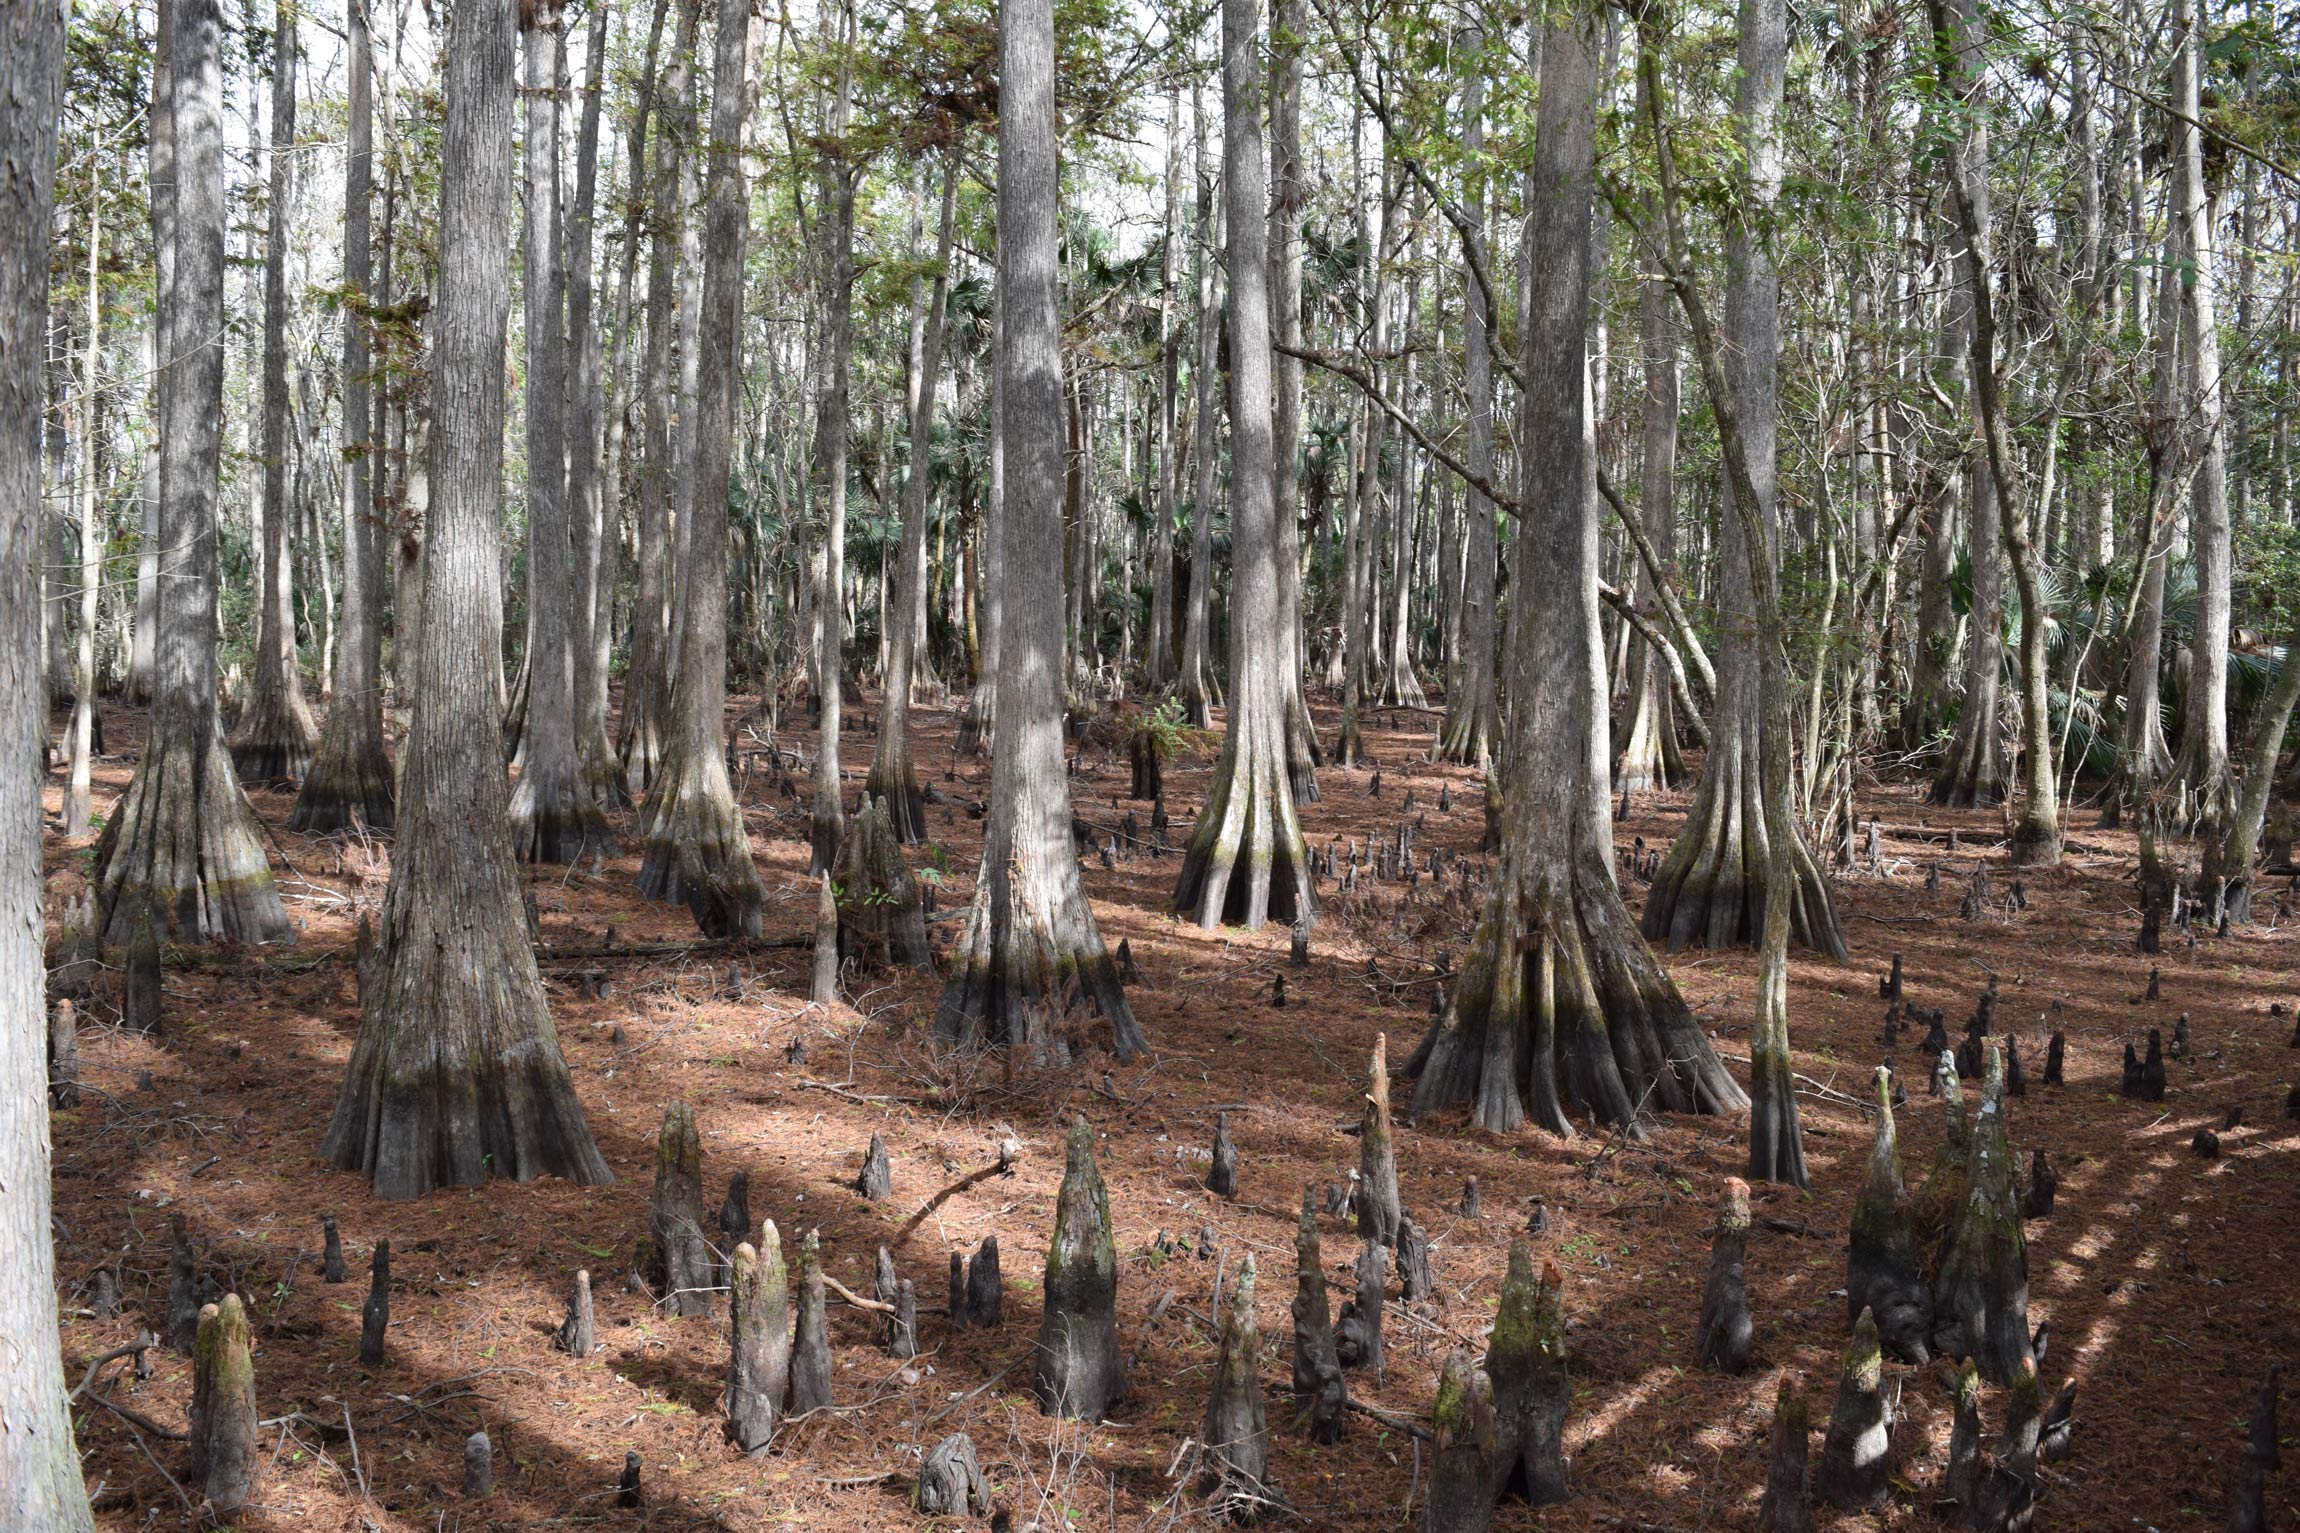 Scattered cypress knees among